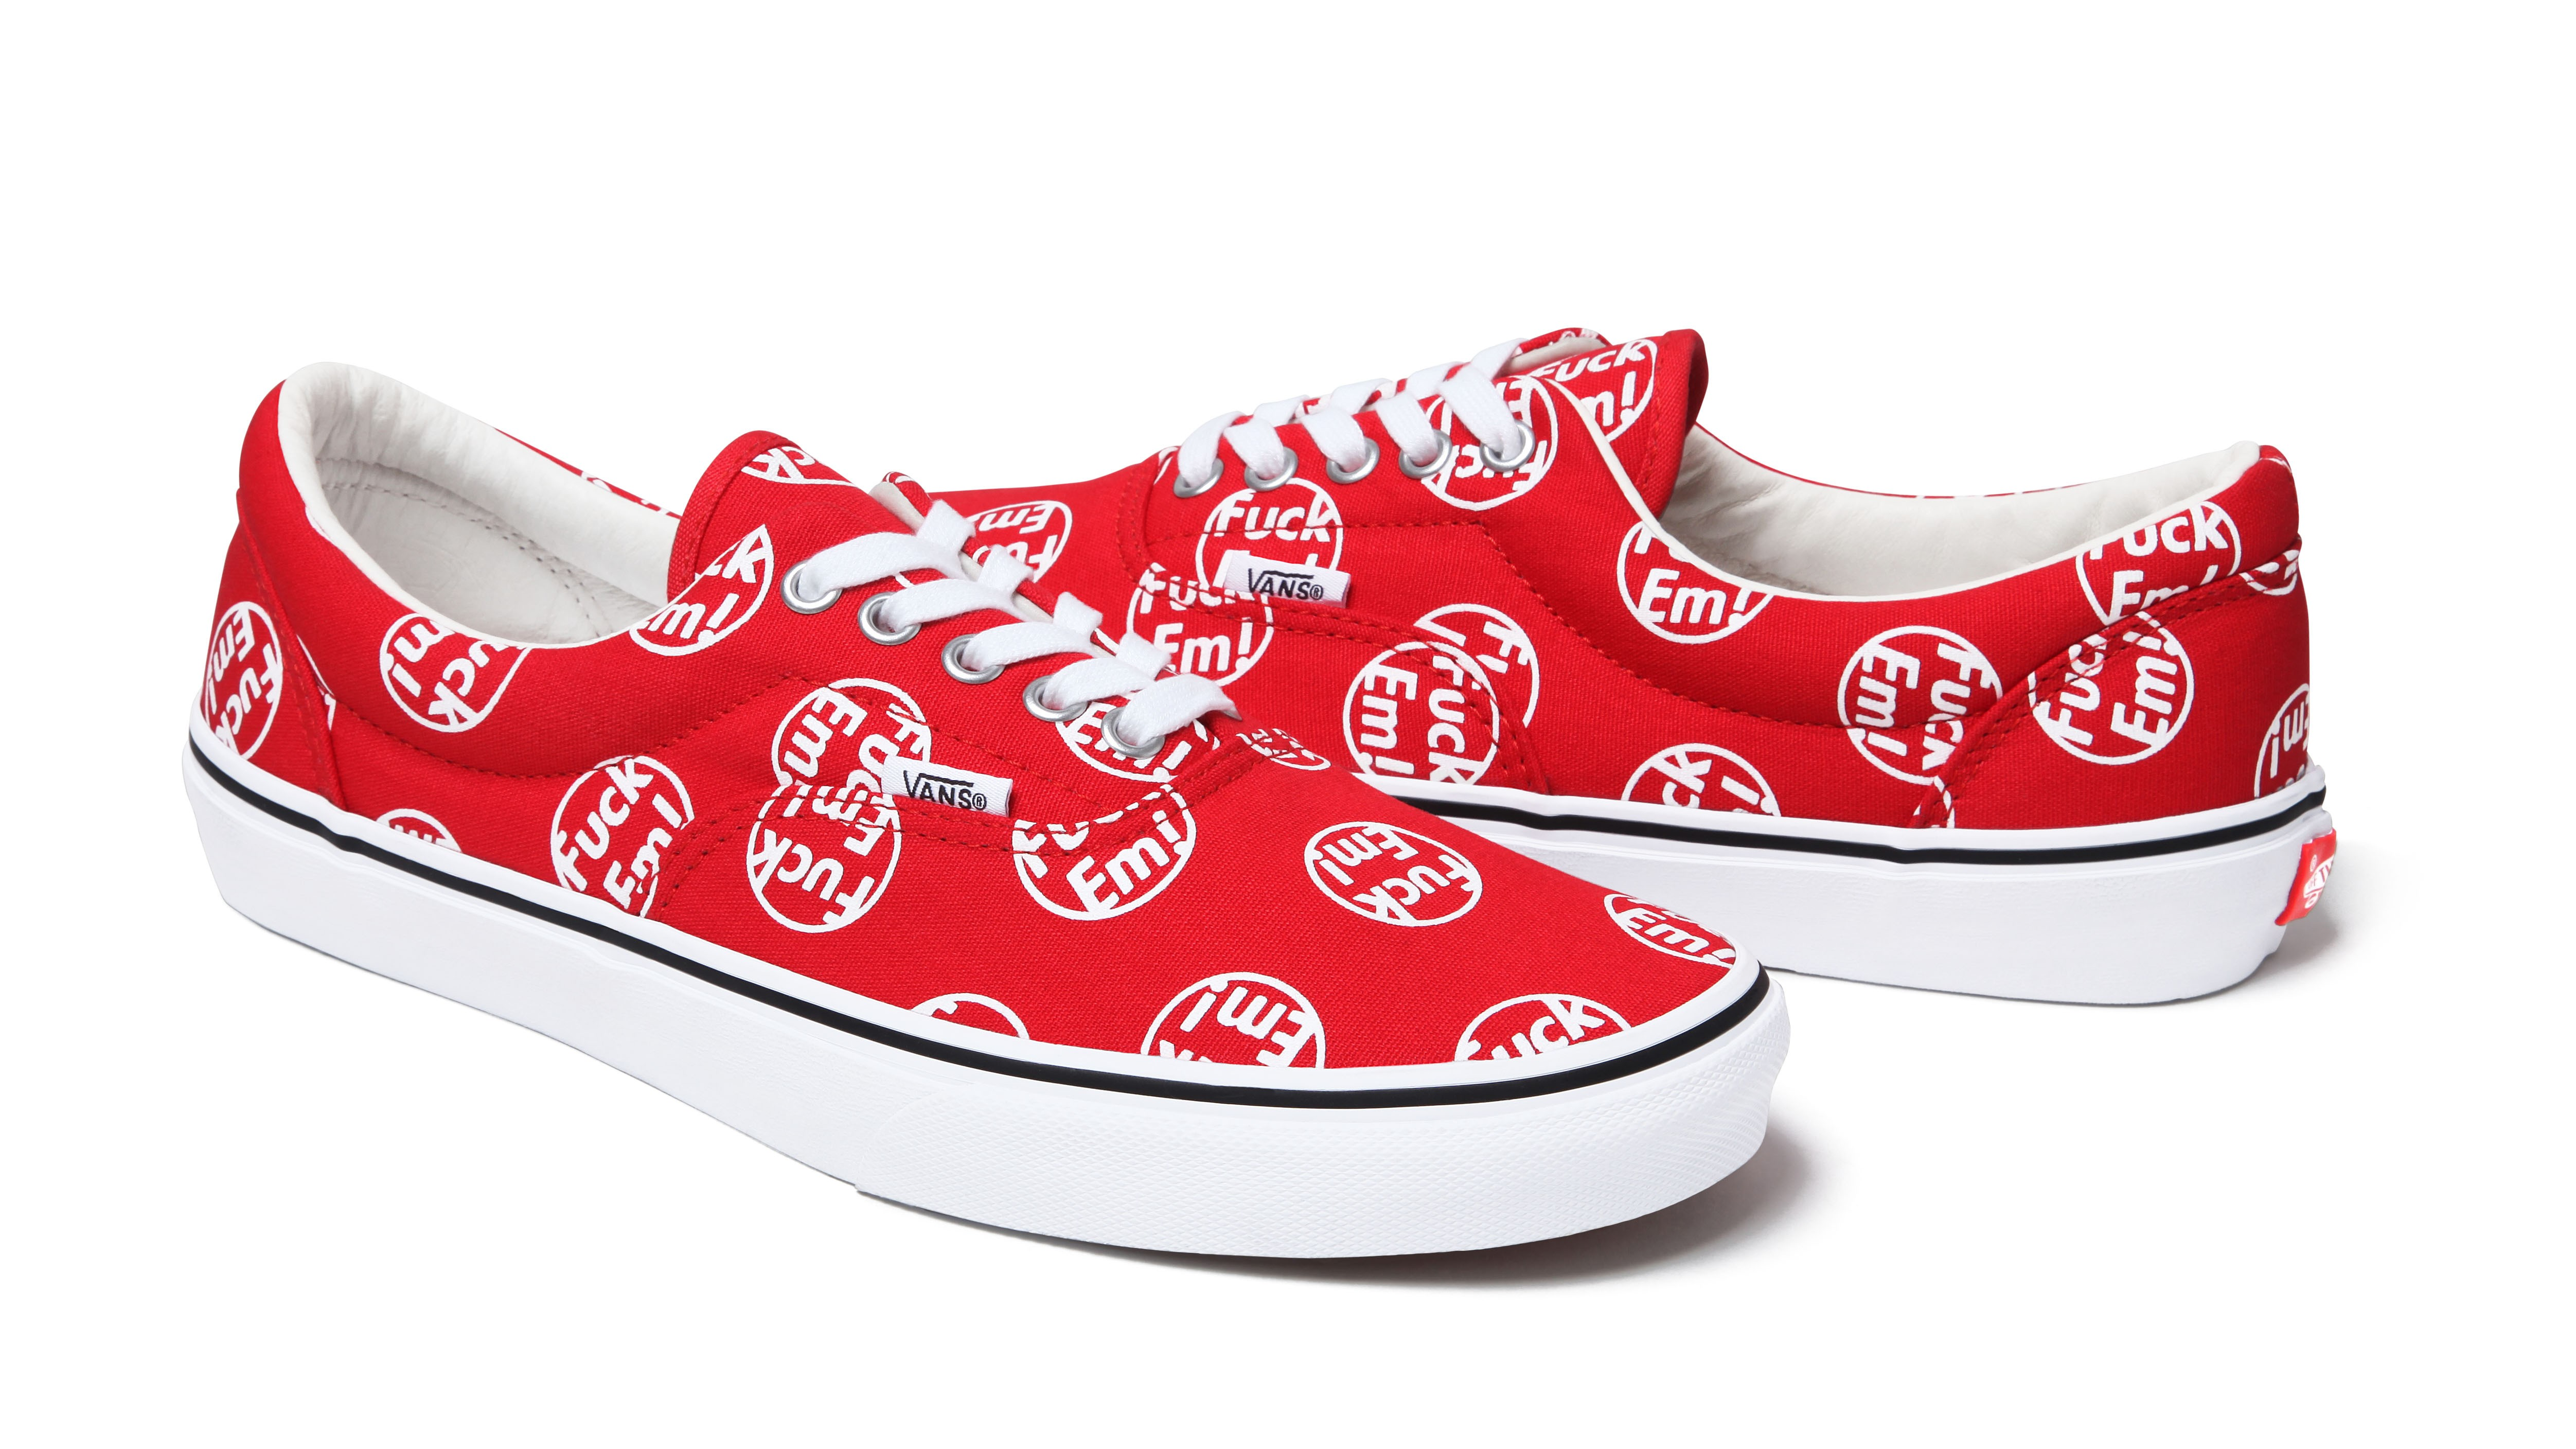 Supreme & Vans fans: get giddy for a collabo